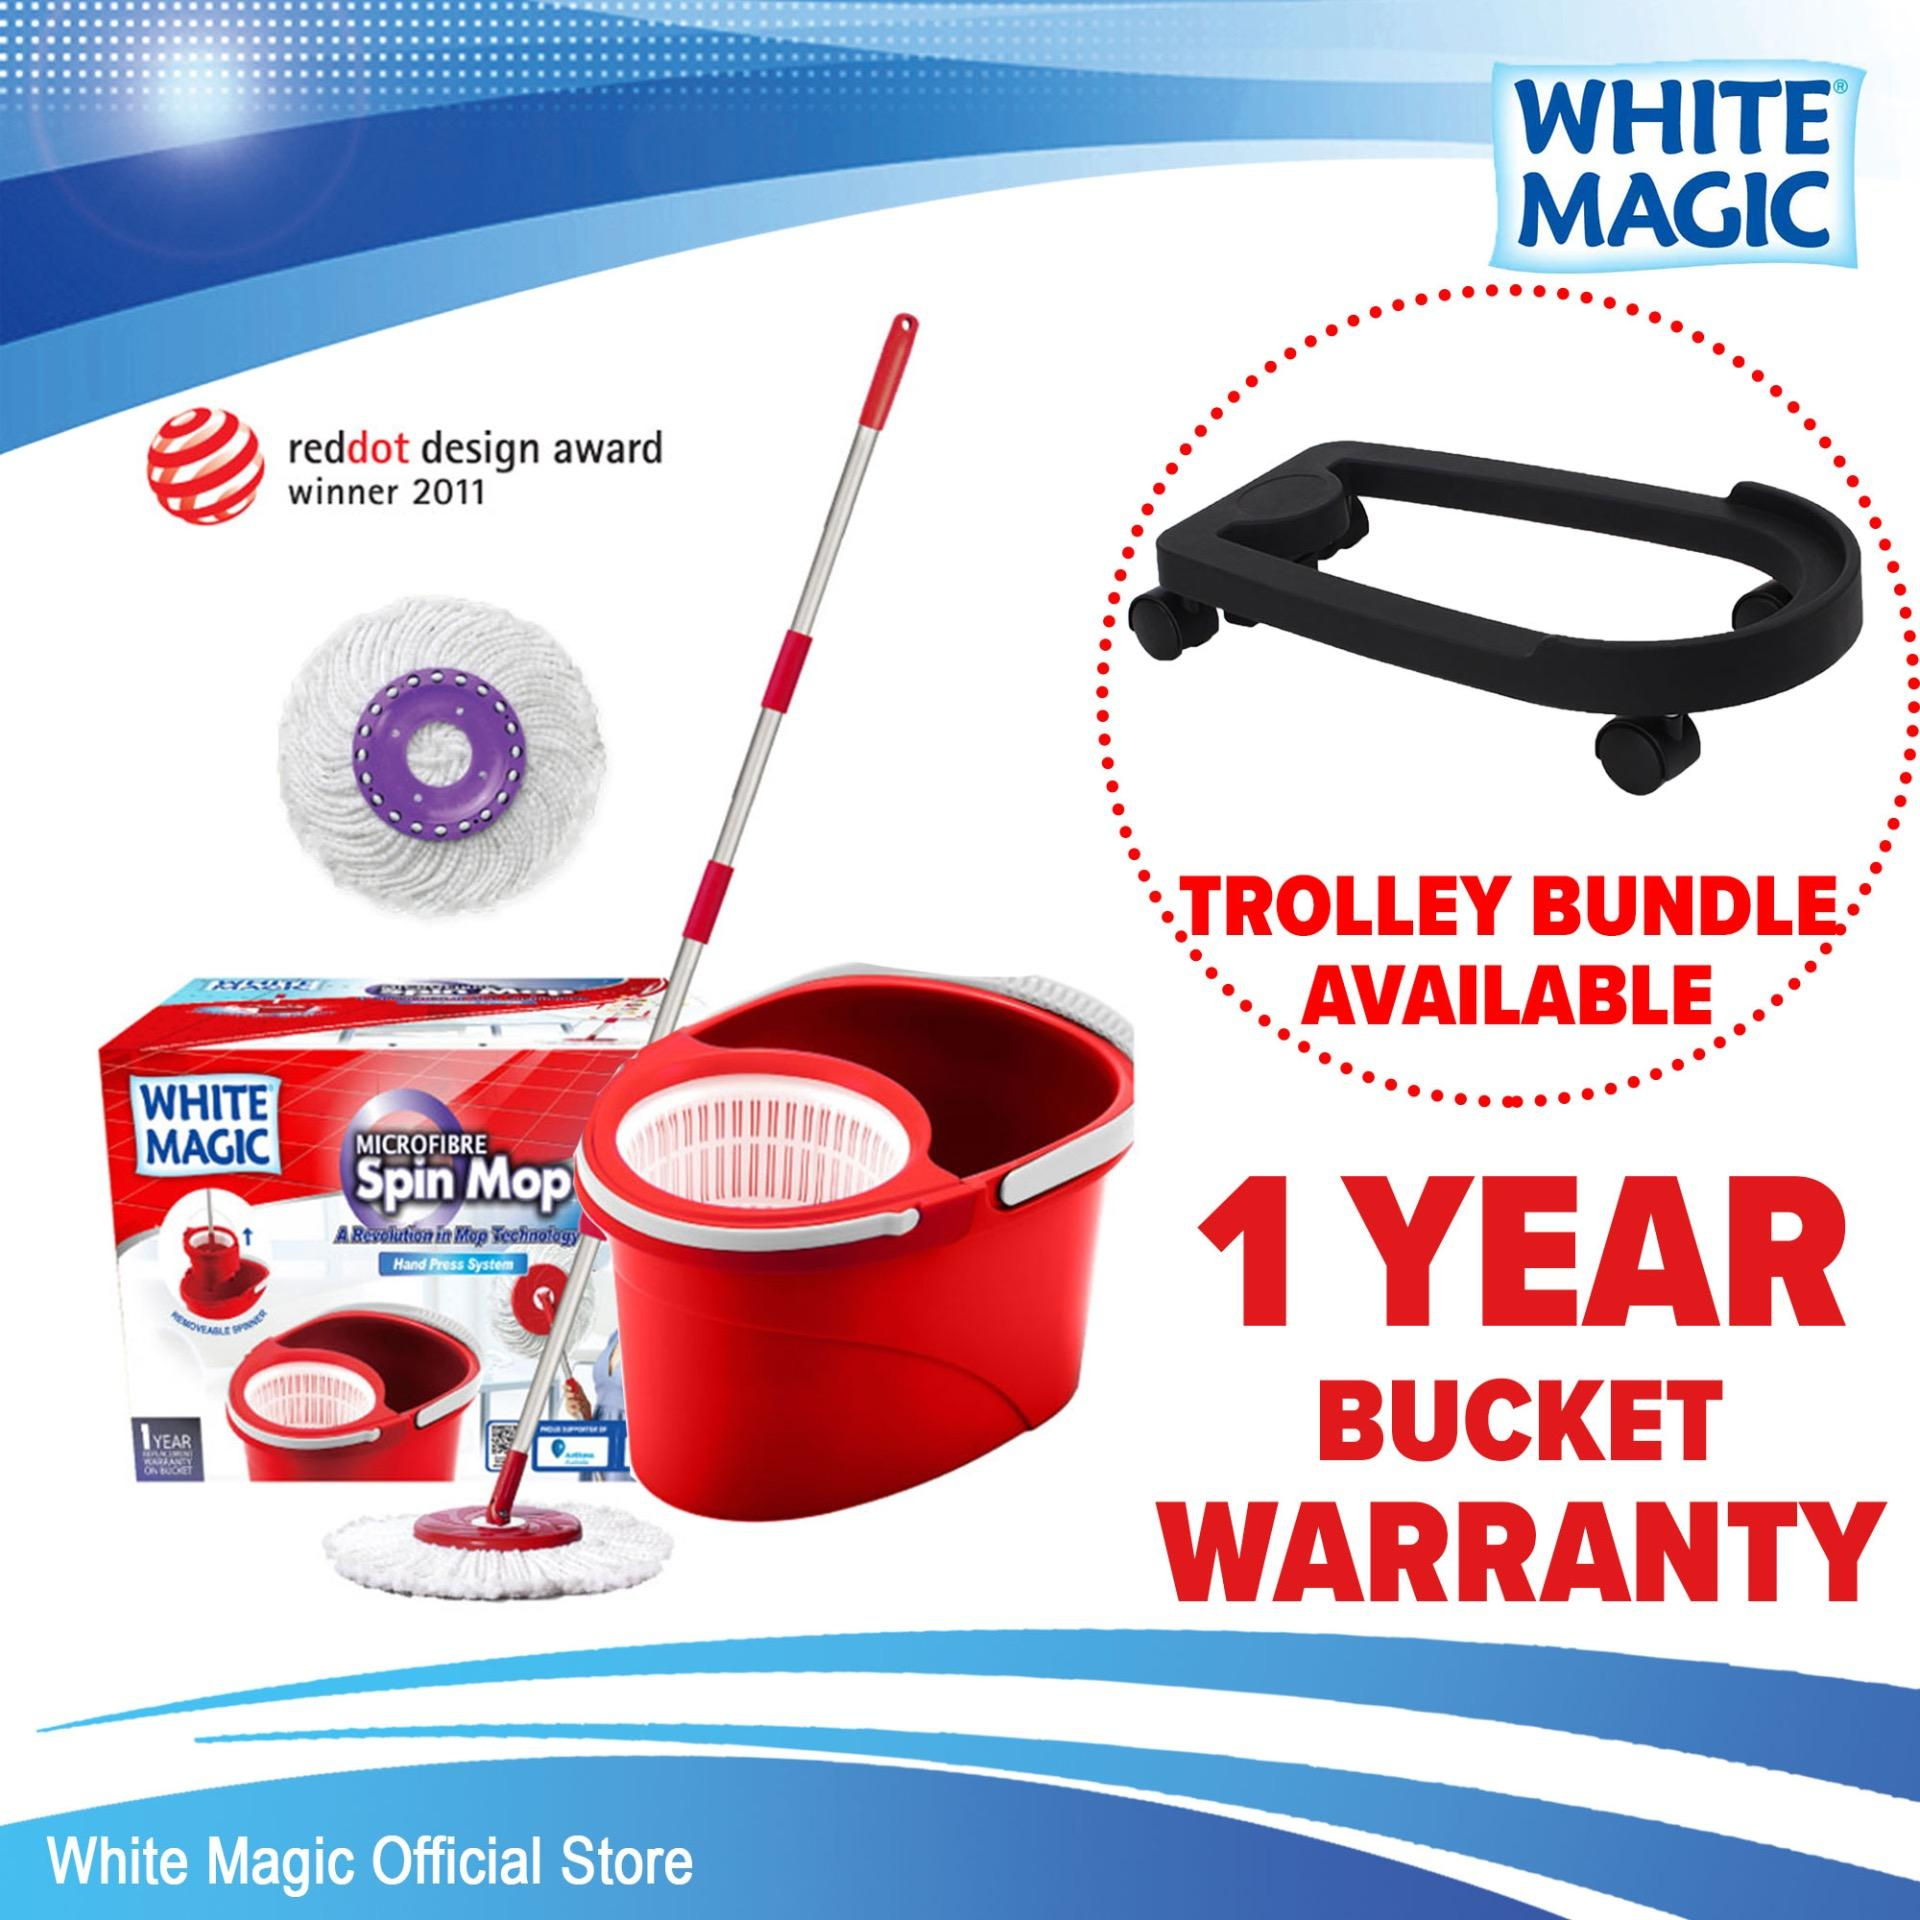 White Magic Hand Press Spin Mop Set (with 2 Free Mop Heads) / Trolley Bundle (add-On Available) / 1 Year Bucket Warranty By White Magic Official Store.